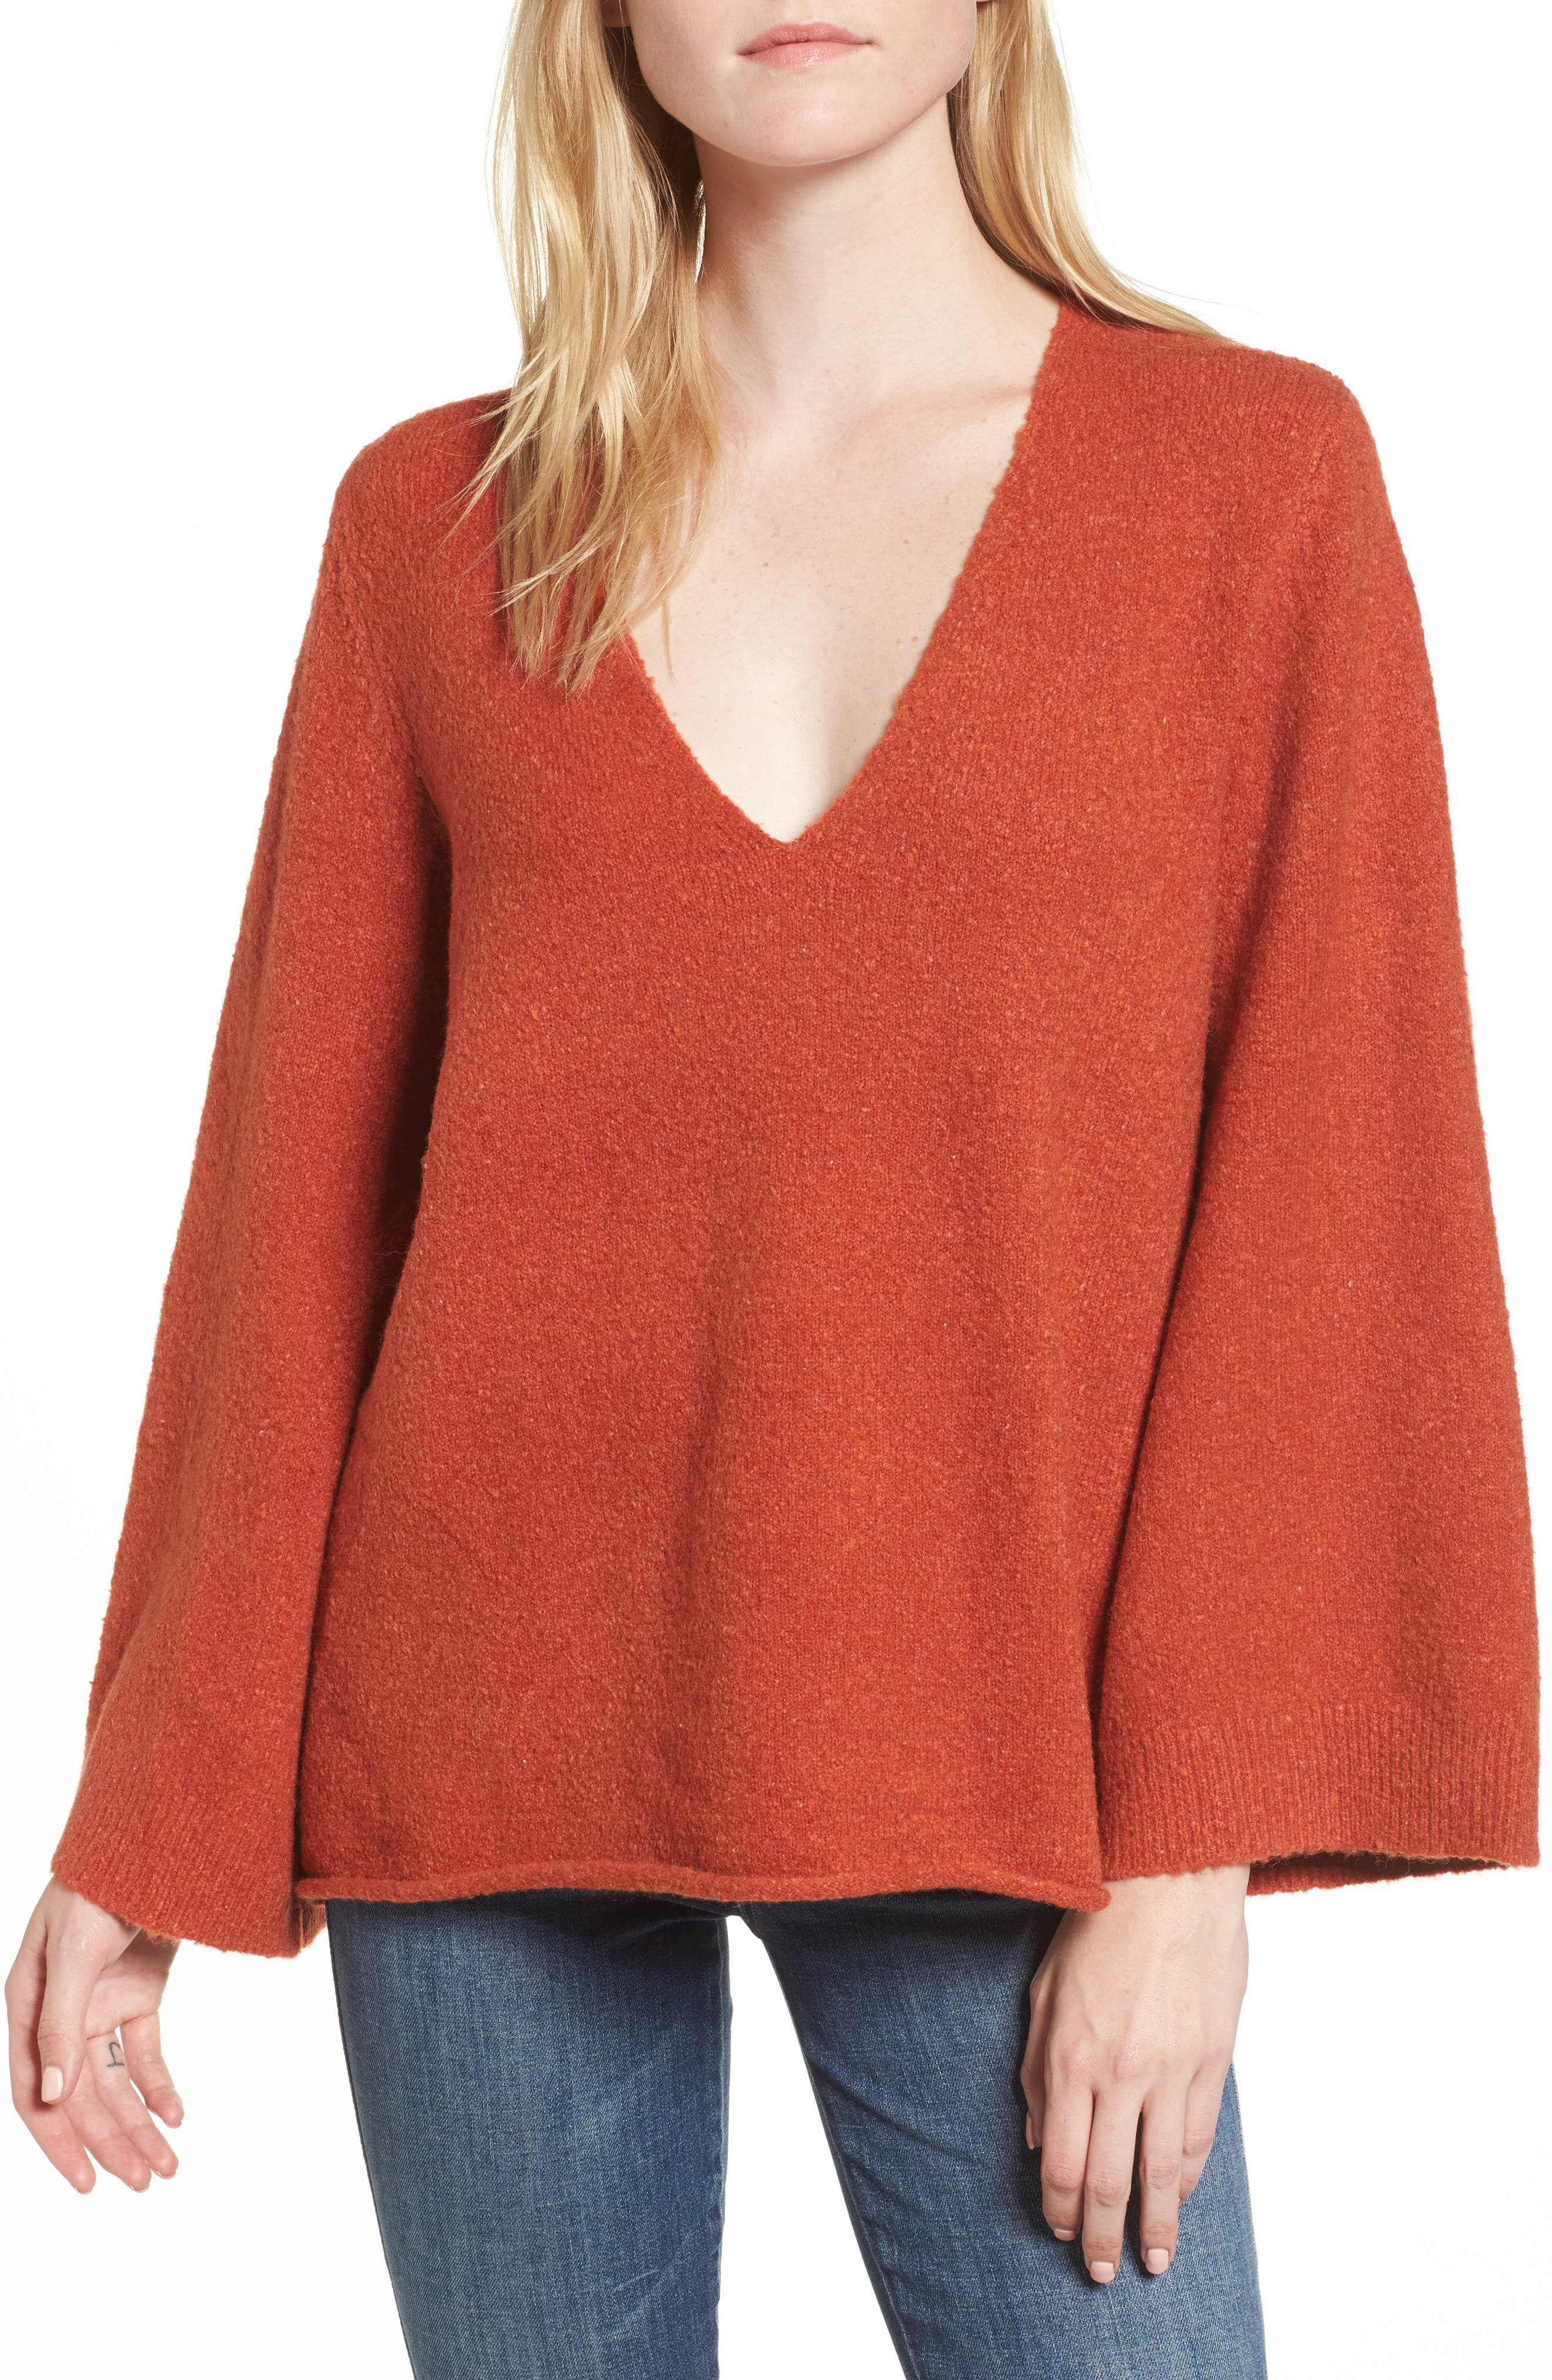 Urban Flossy Sweater,                         Main,                         color, Copper Coin